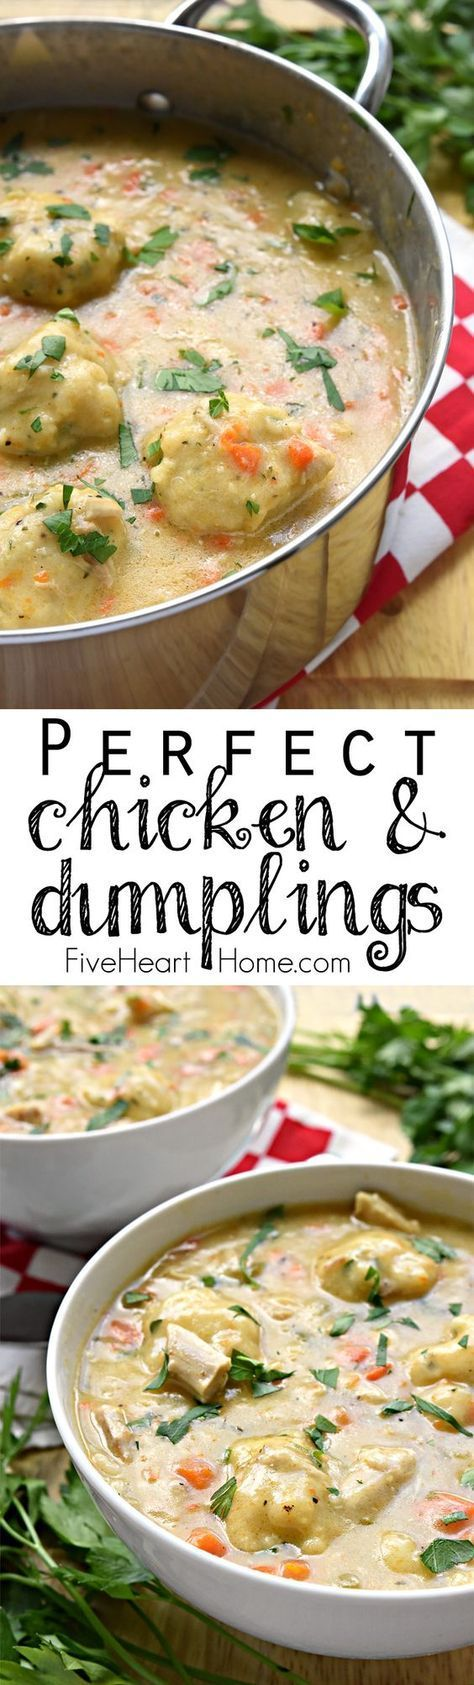 Homemade Chicken & Dumplings ~ a comfort food classic featuring flavorful broth loaded with tender chunks of chicken, sweet carrots, fresh thyme, and fluffy dumplings | FiveHeartHome.com: